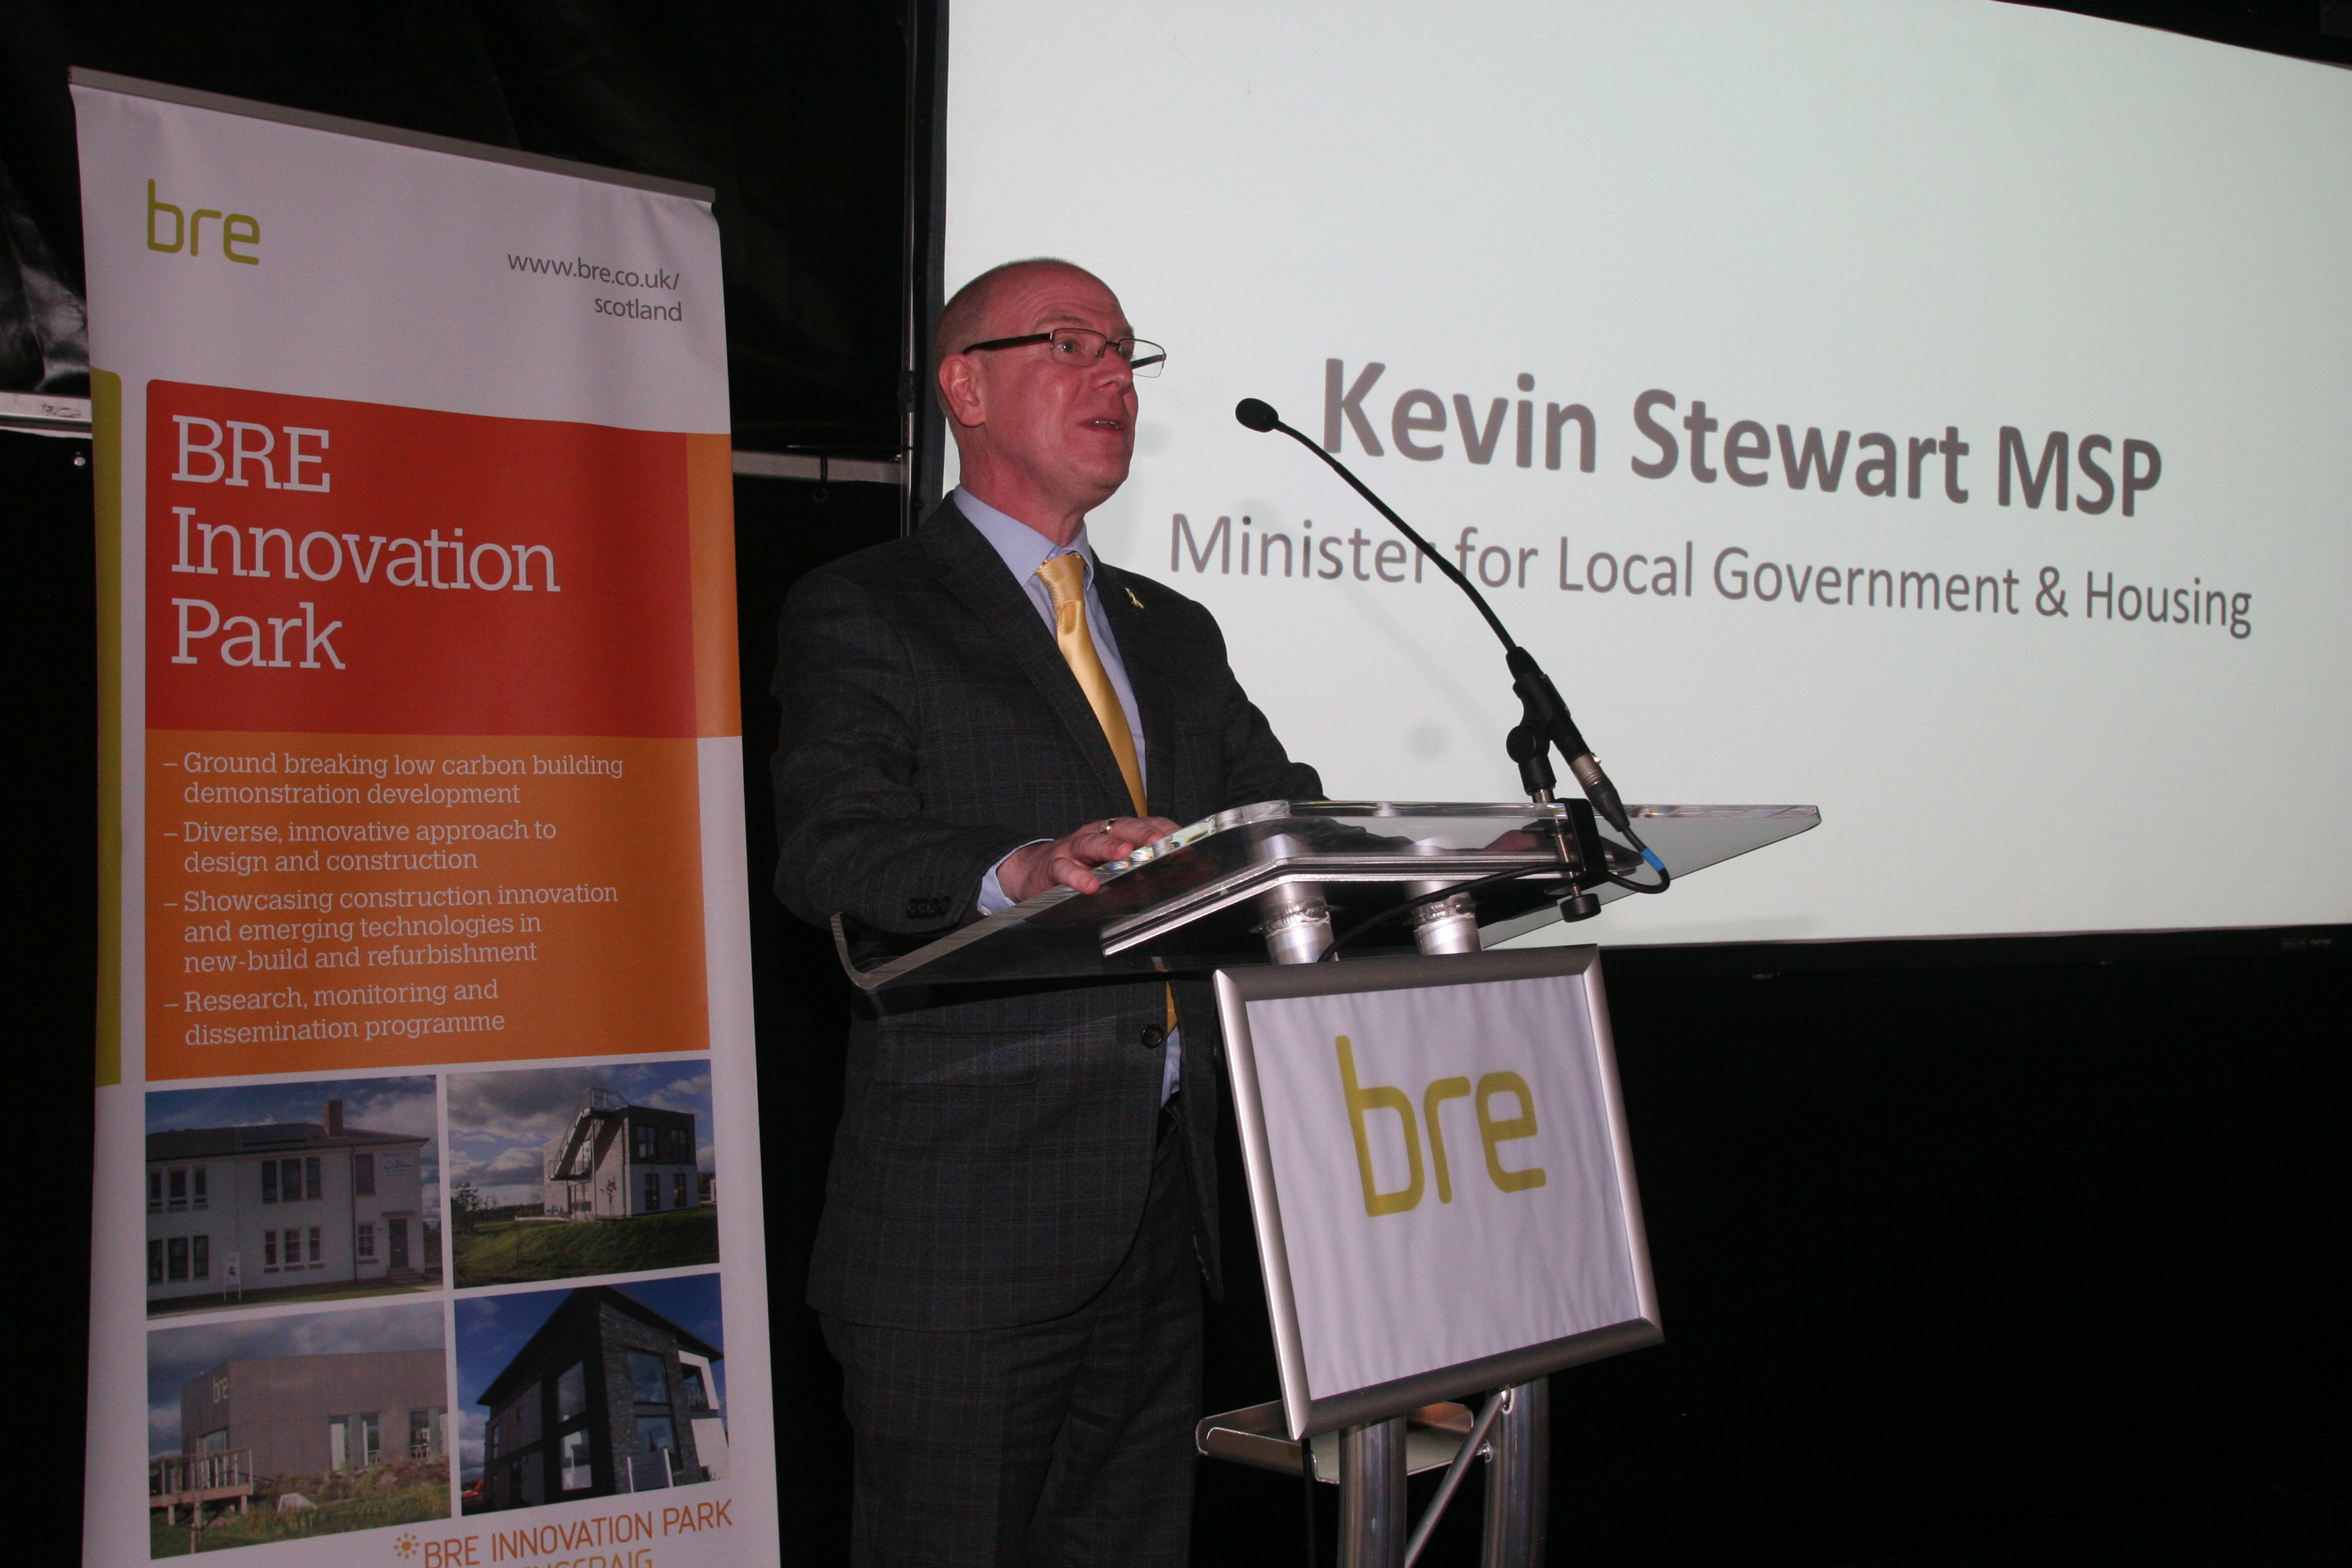 Media Release: BRE assistive technology event praised by Scottish Housing Minister